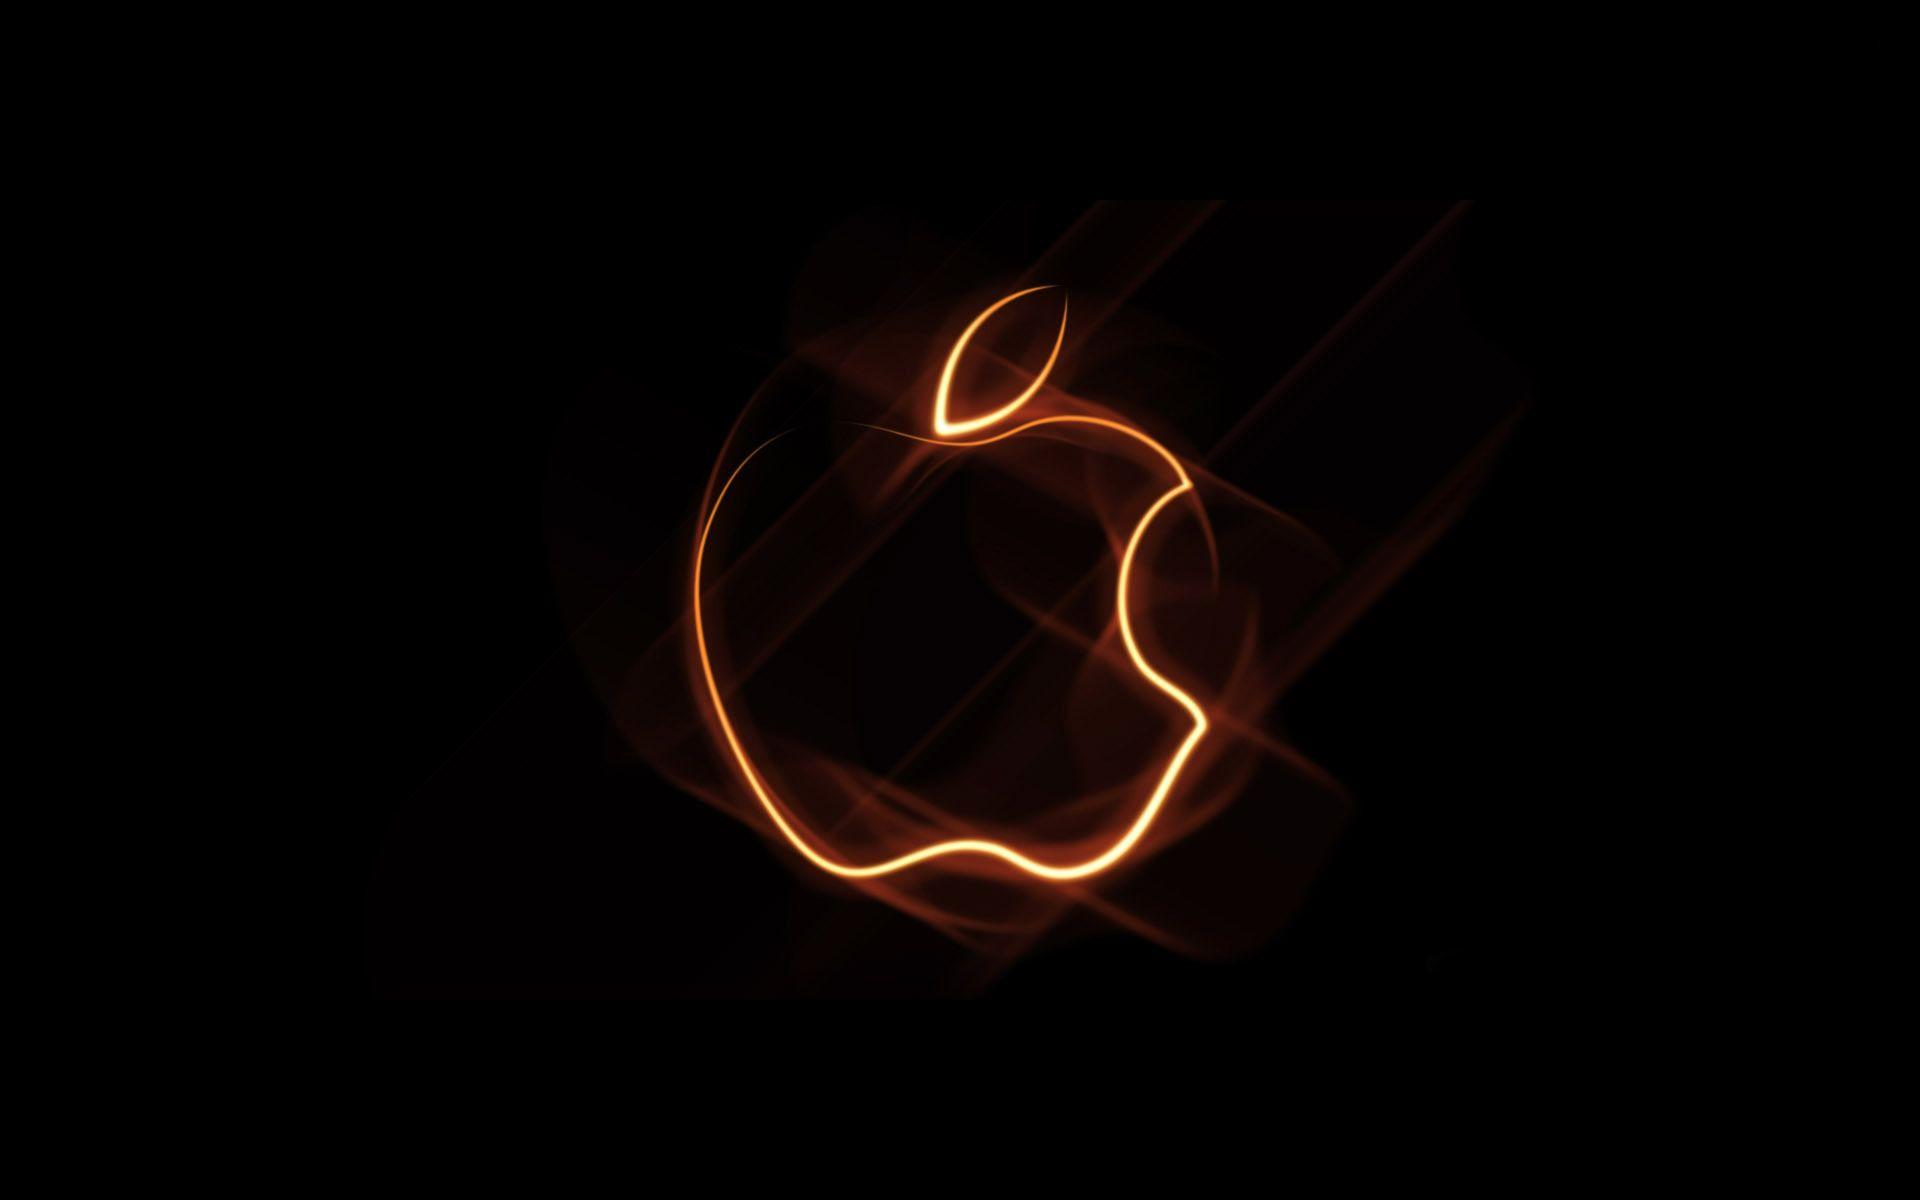 Apple Logo Hd Wallpapers Dowload